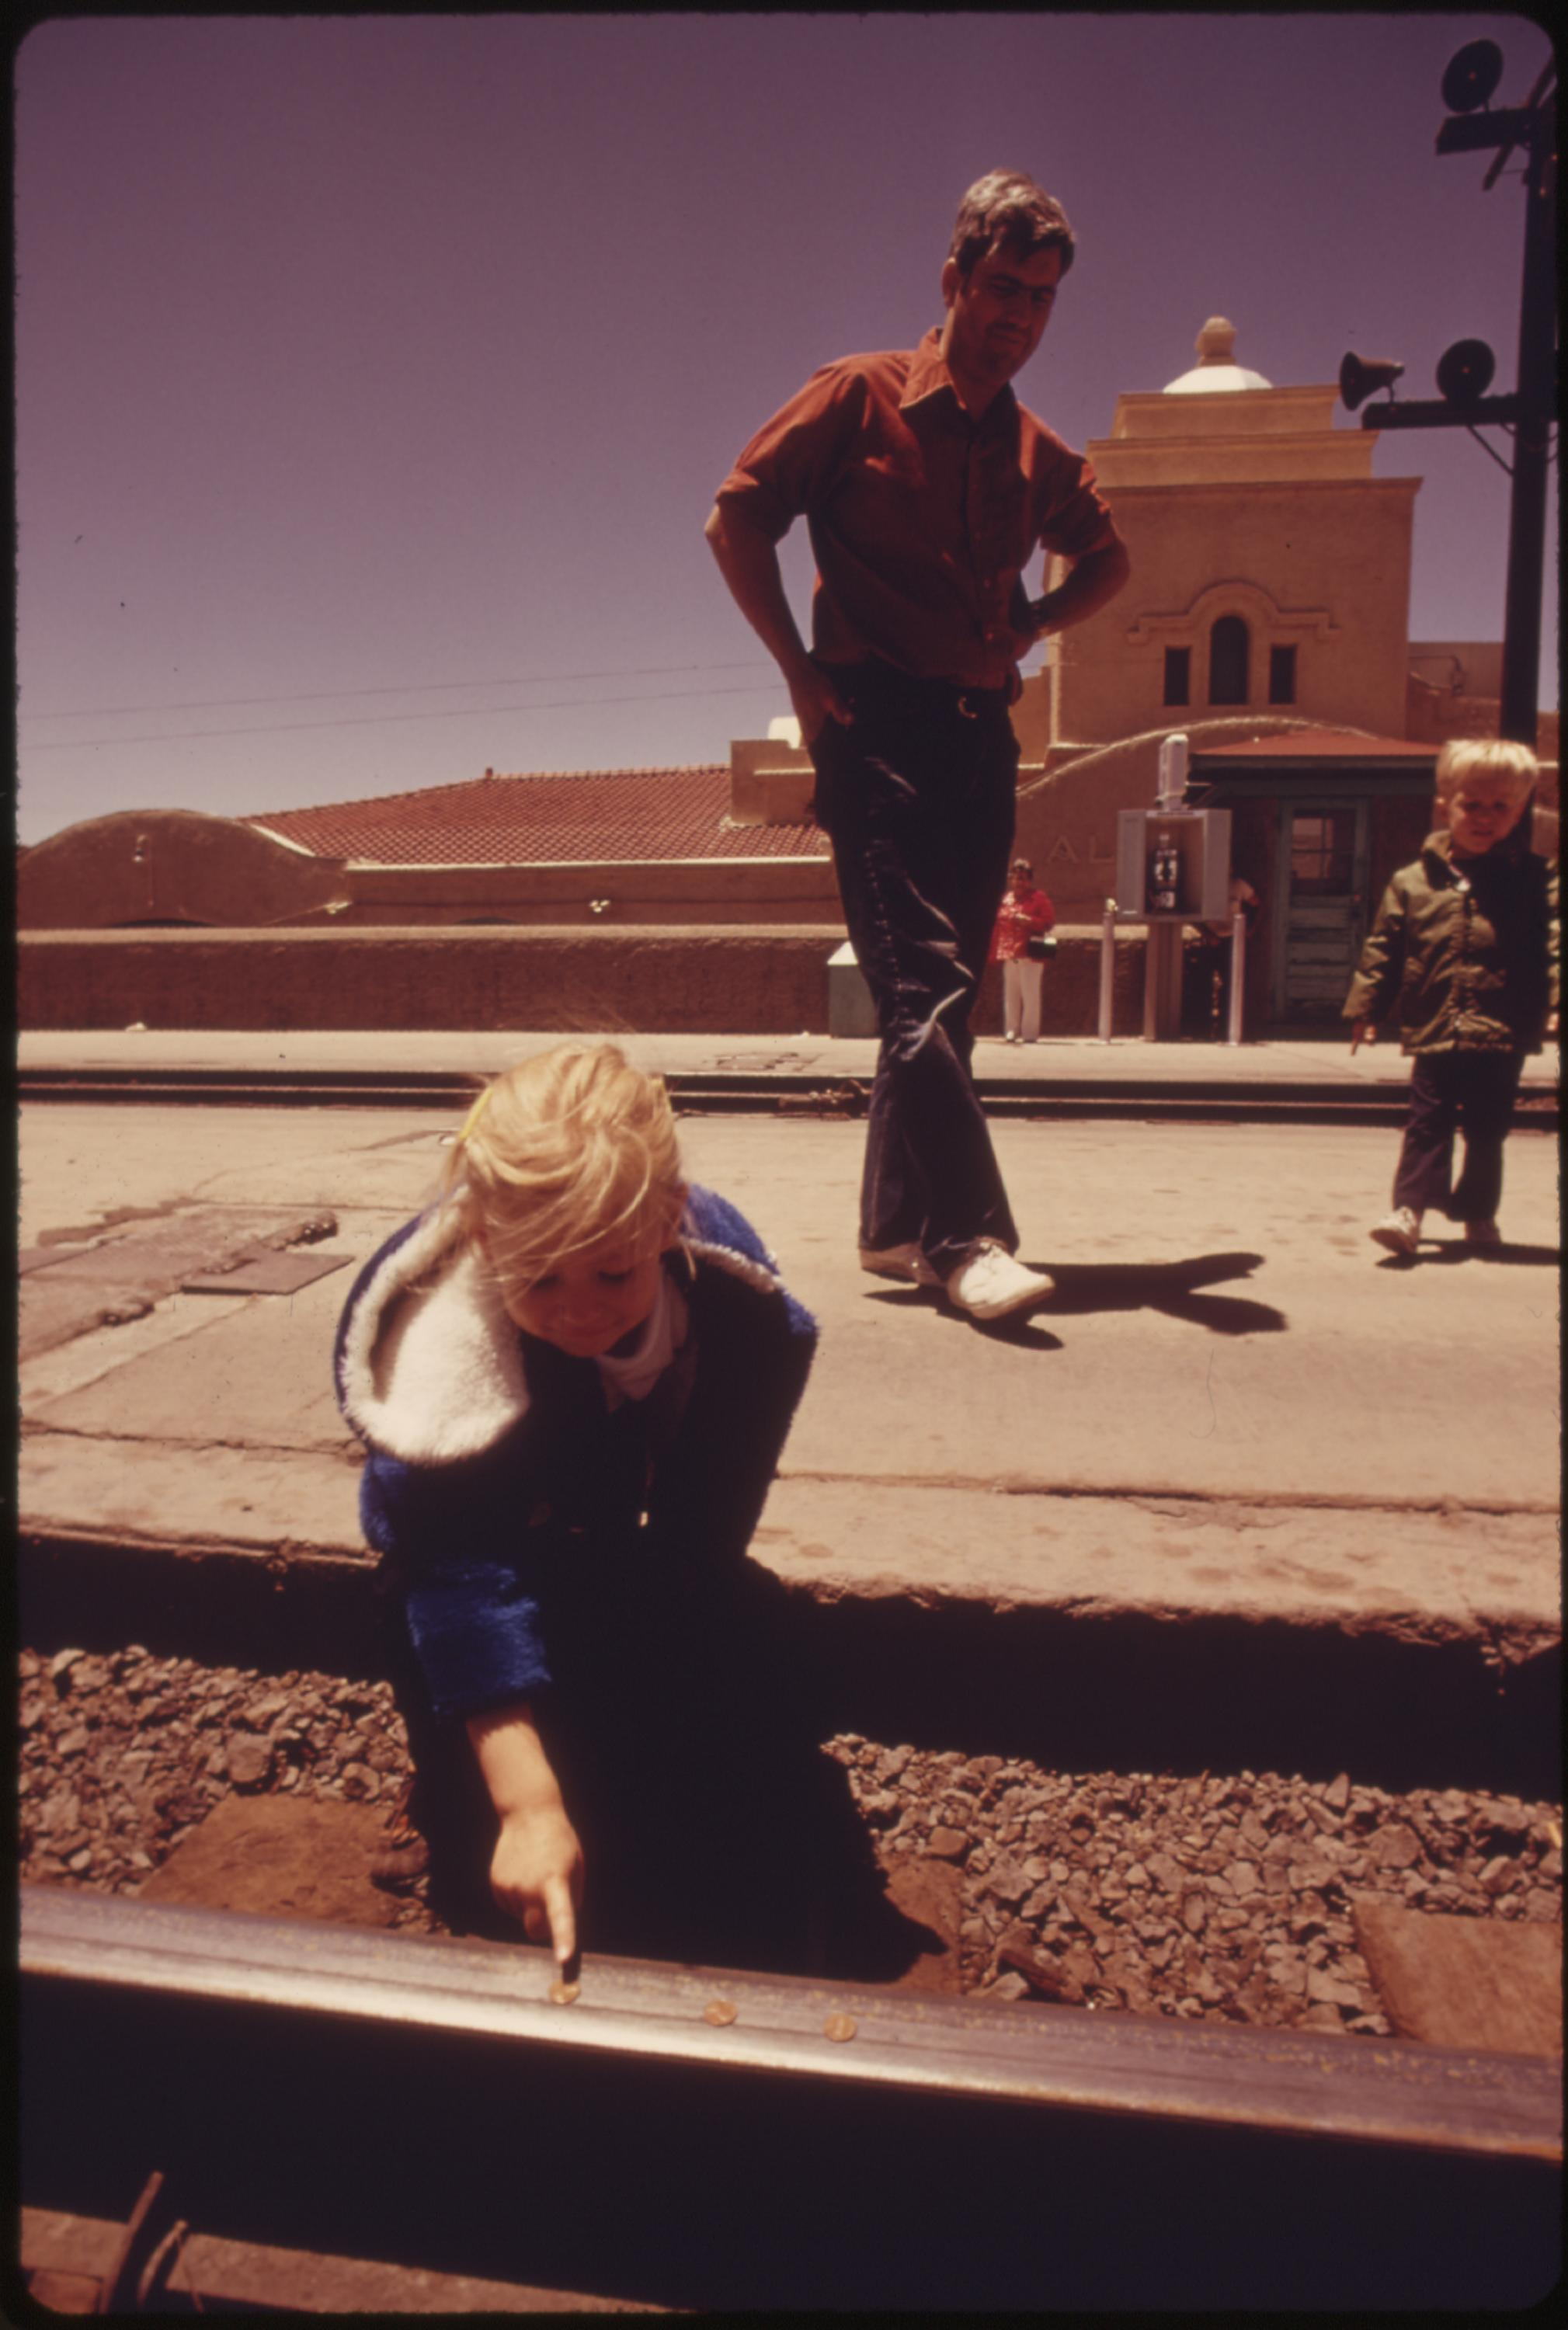 A child places pennies on the track at the Albuquerque, New Mexico, train station and will wait for the Southwest Limited to flatten them as a souvenir, June 1974